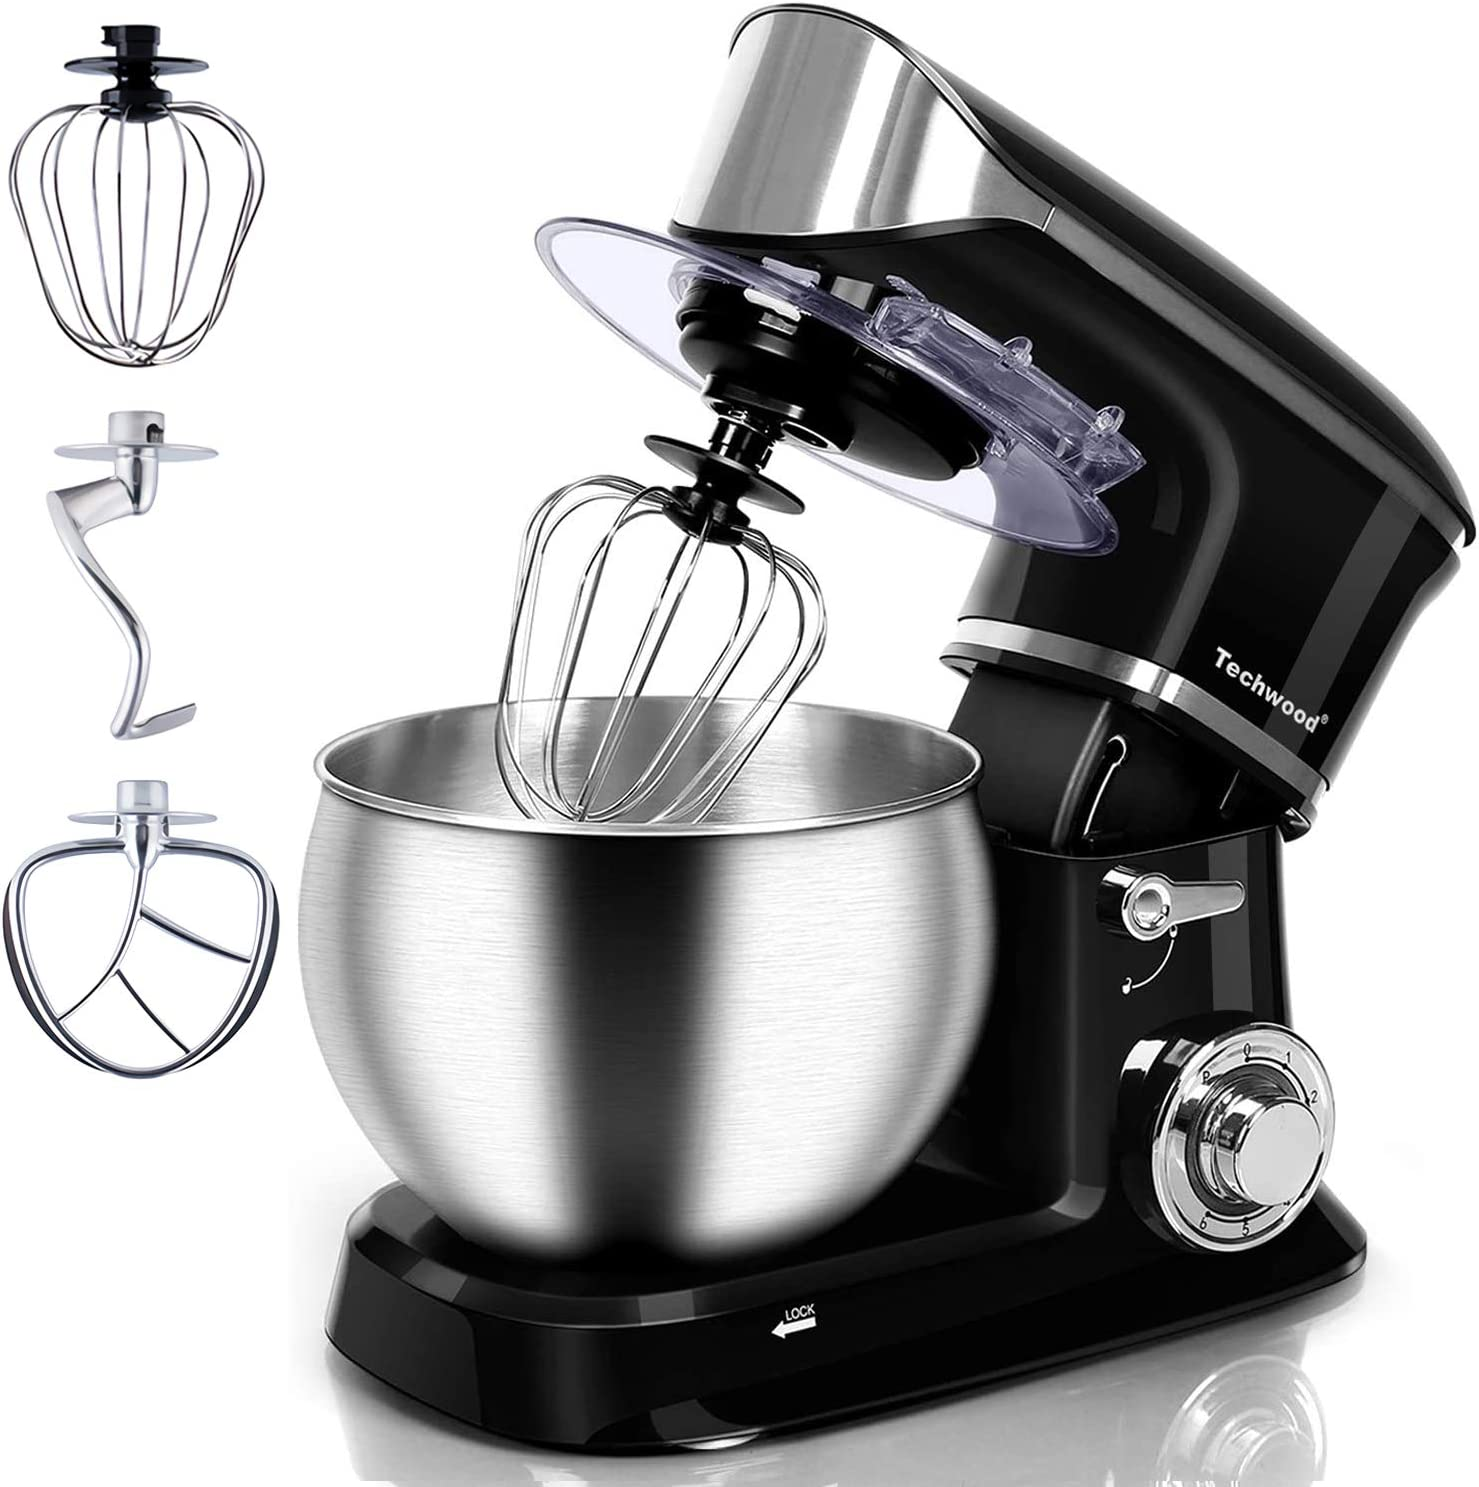 Stand Mixer, Techwood Electric Food Mixer, 6QT 800W 6-Speed Tilt-Head Kitchen Dough Mixer with Stainless Steel Bowl, Dough Hook, Wire Whip and Beater